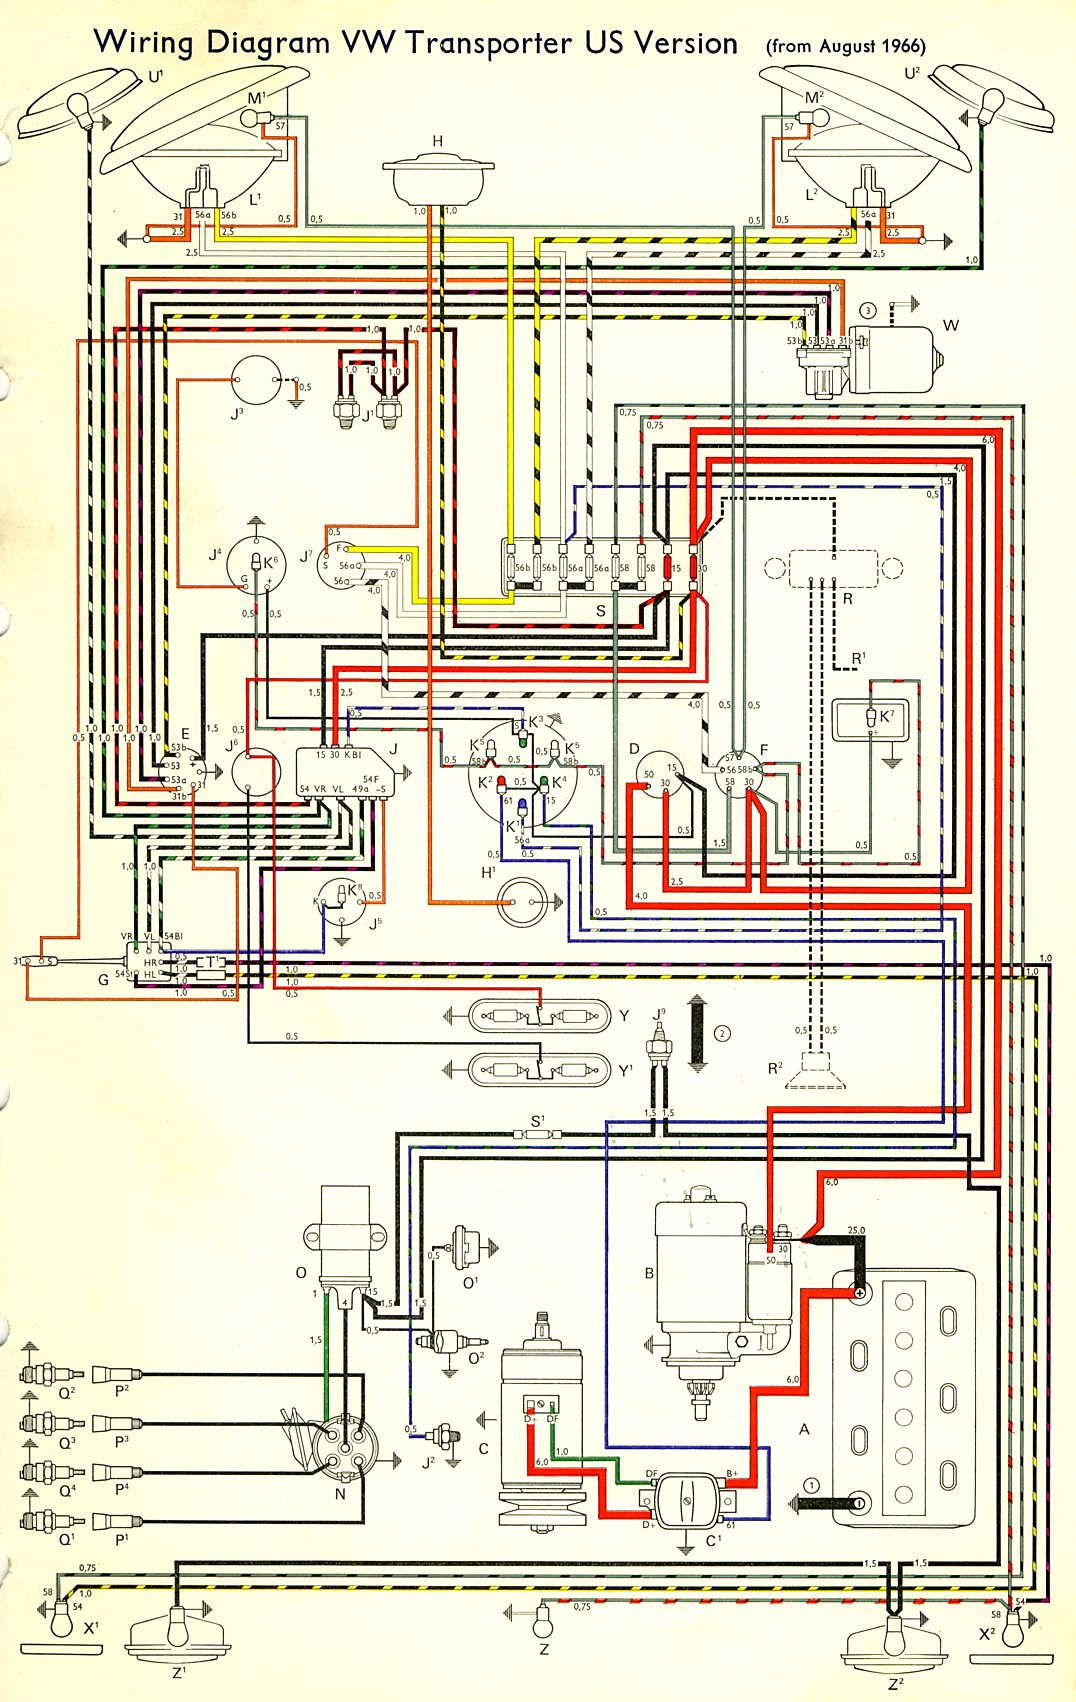 bus_67_USA 67 vw bus wiring harness 71 vw wiring harness \u2022 wiring diagrams Wiring Harness Diagram at gsmportal.co